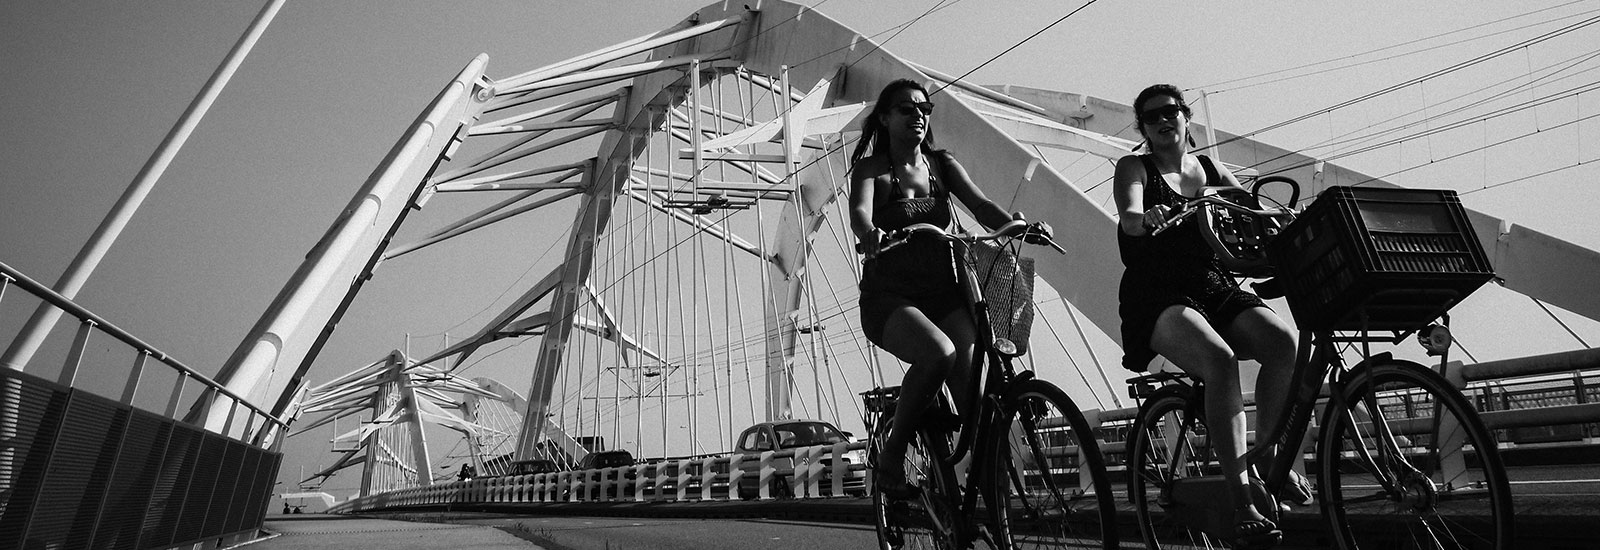 Bicycle Street Photography Summer 2017